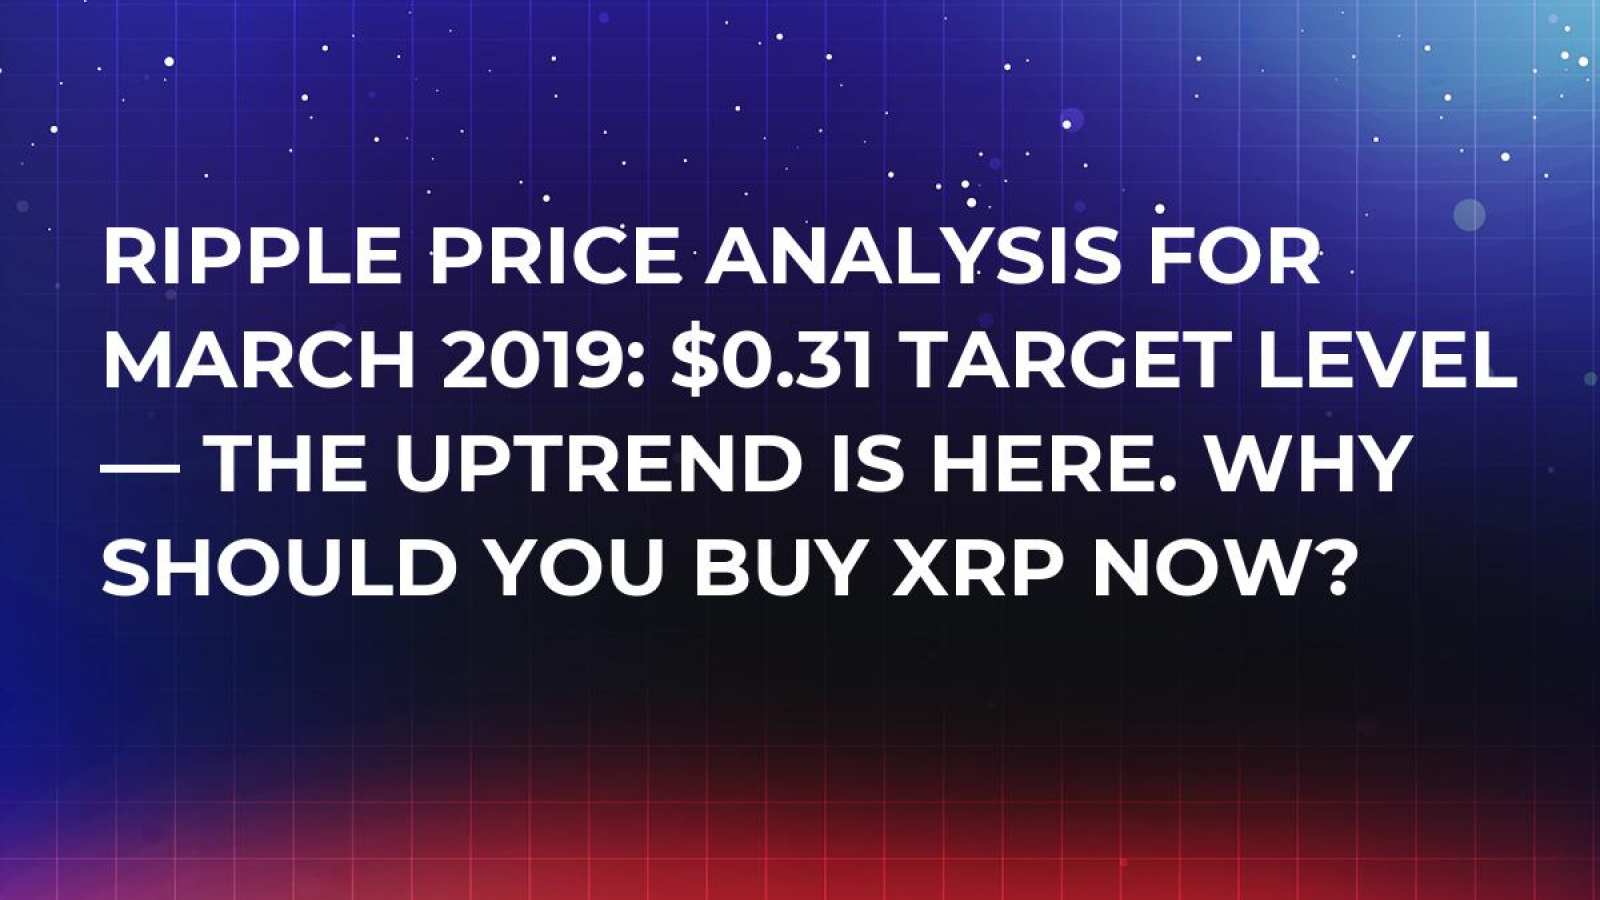 buy xrp now